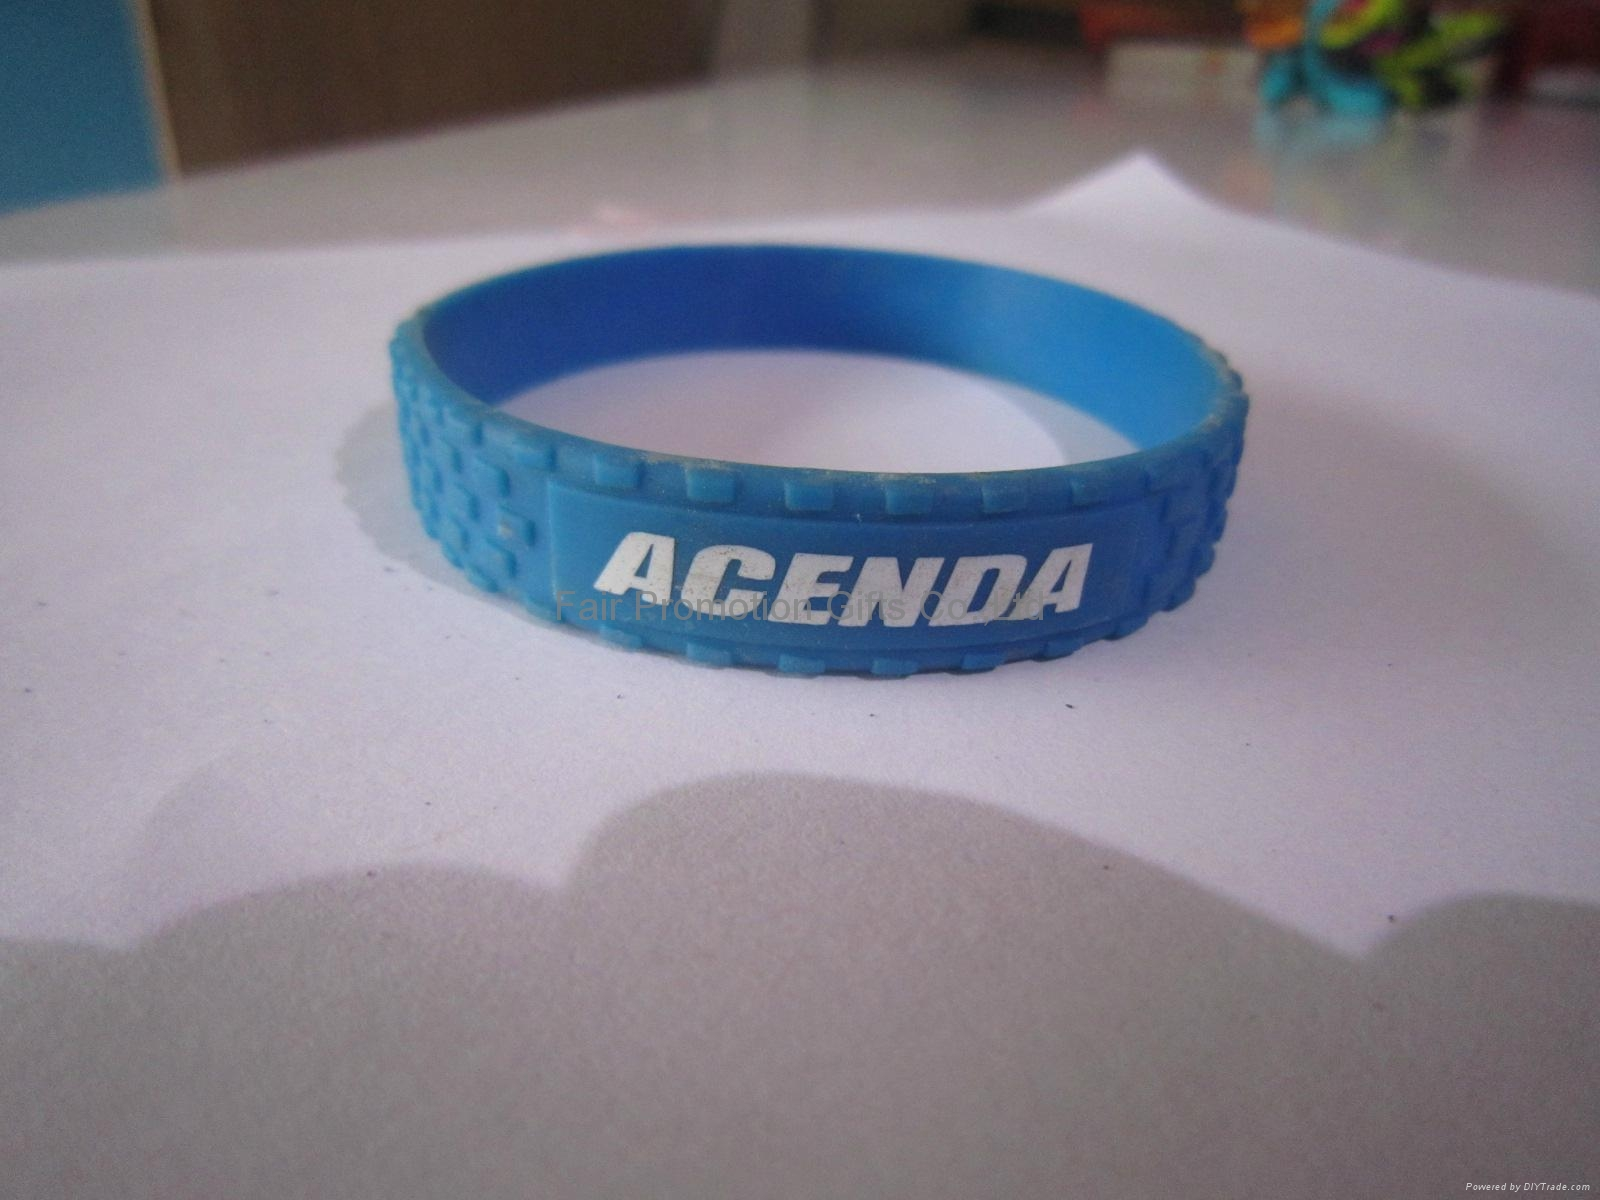 Kenda Bicycle Road Tire Bracelet 4